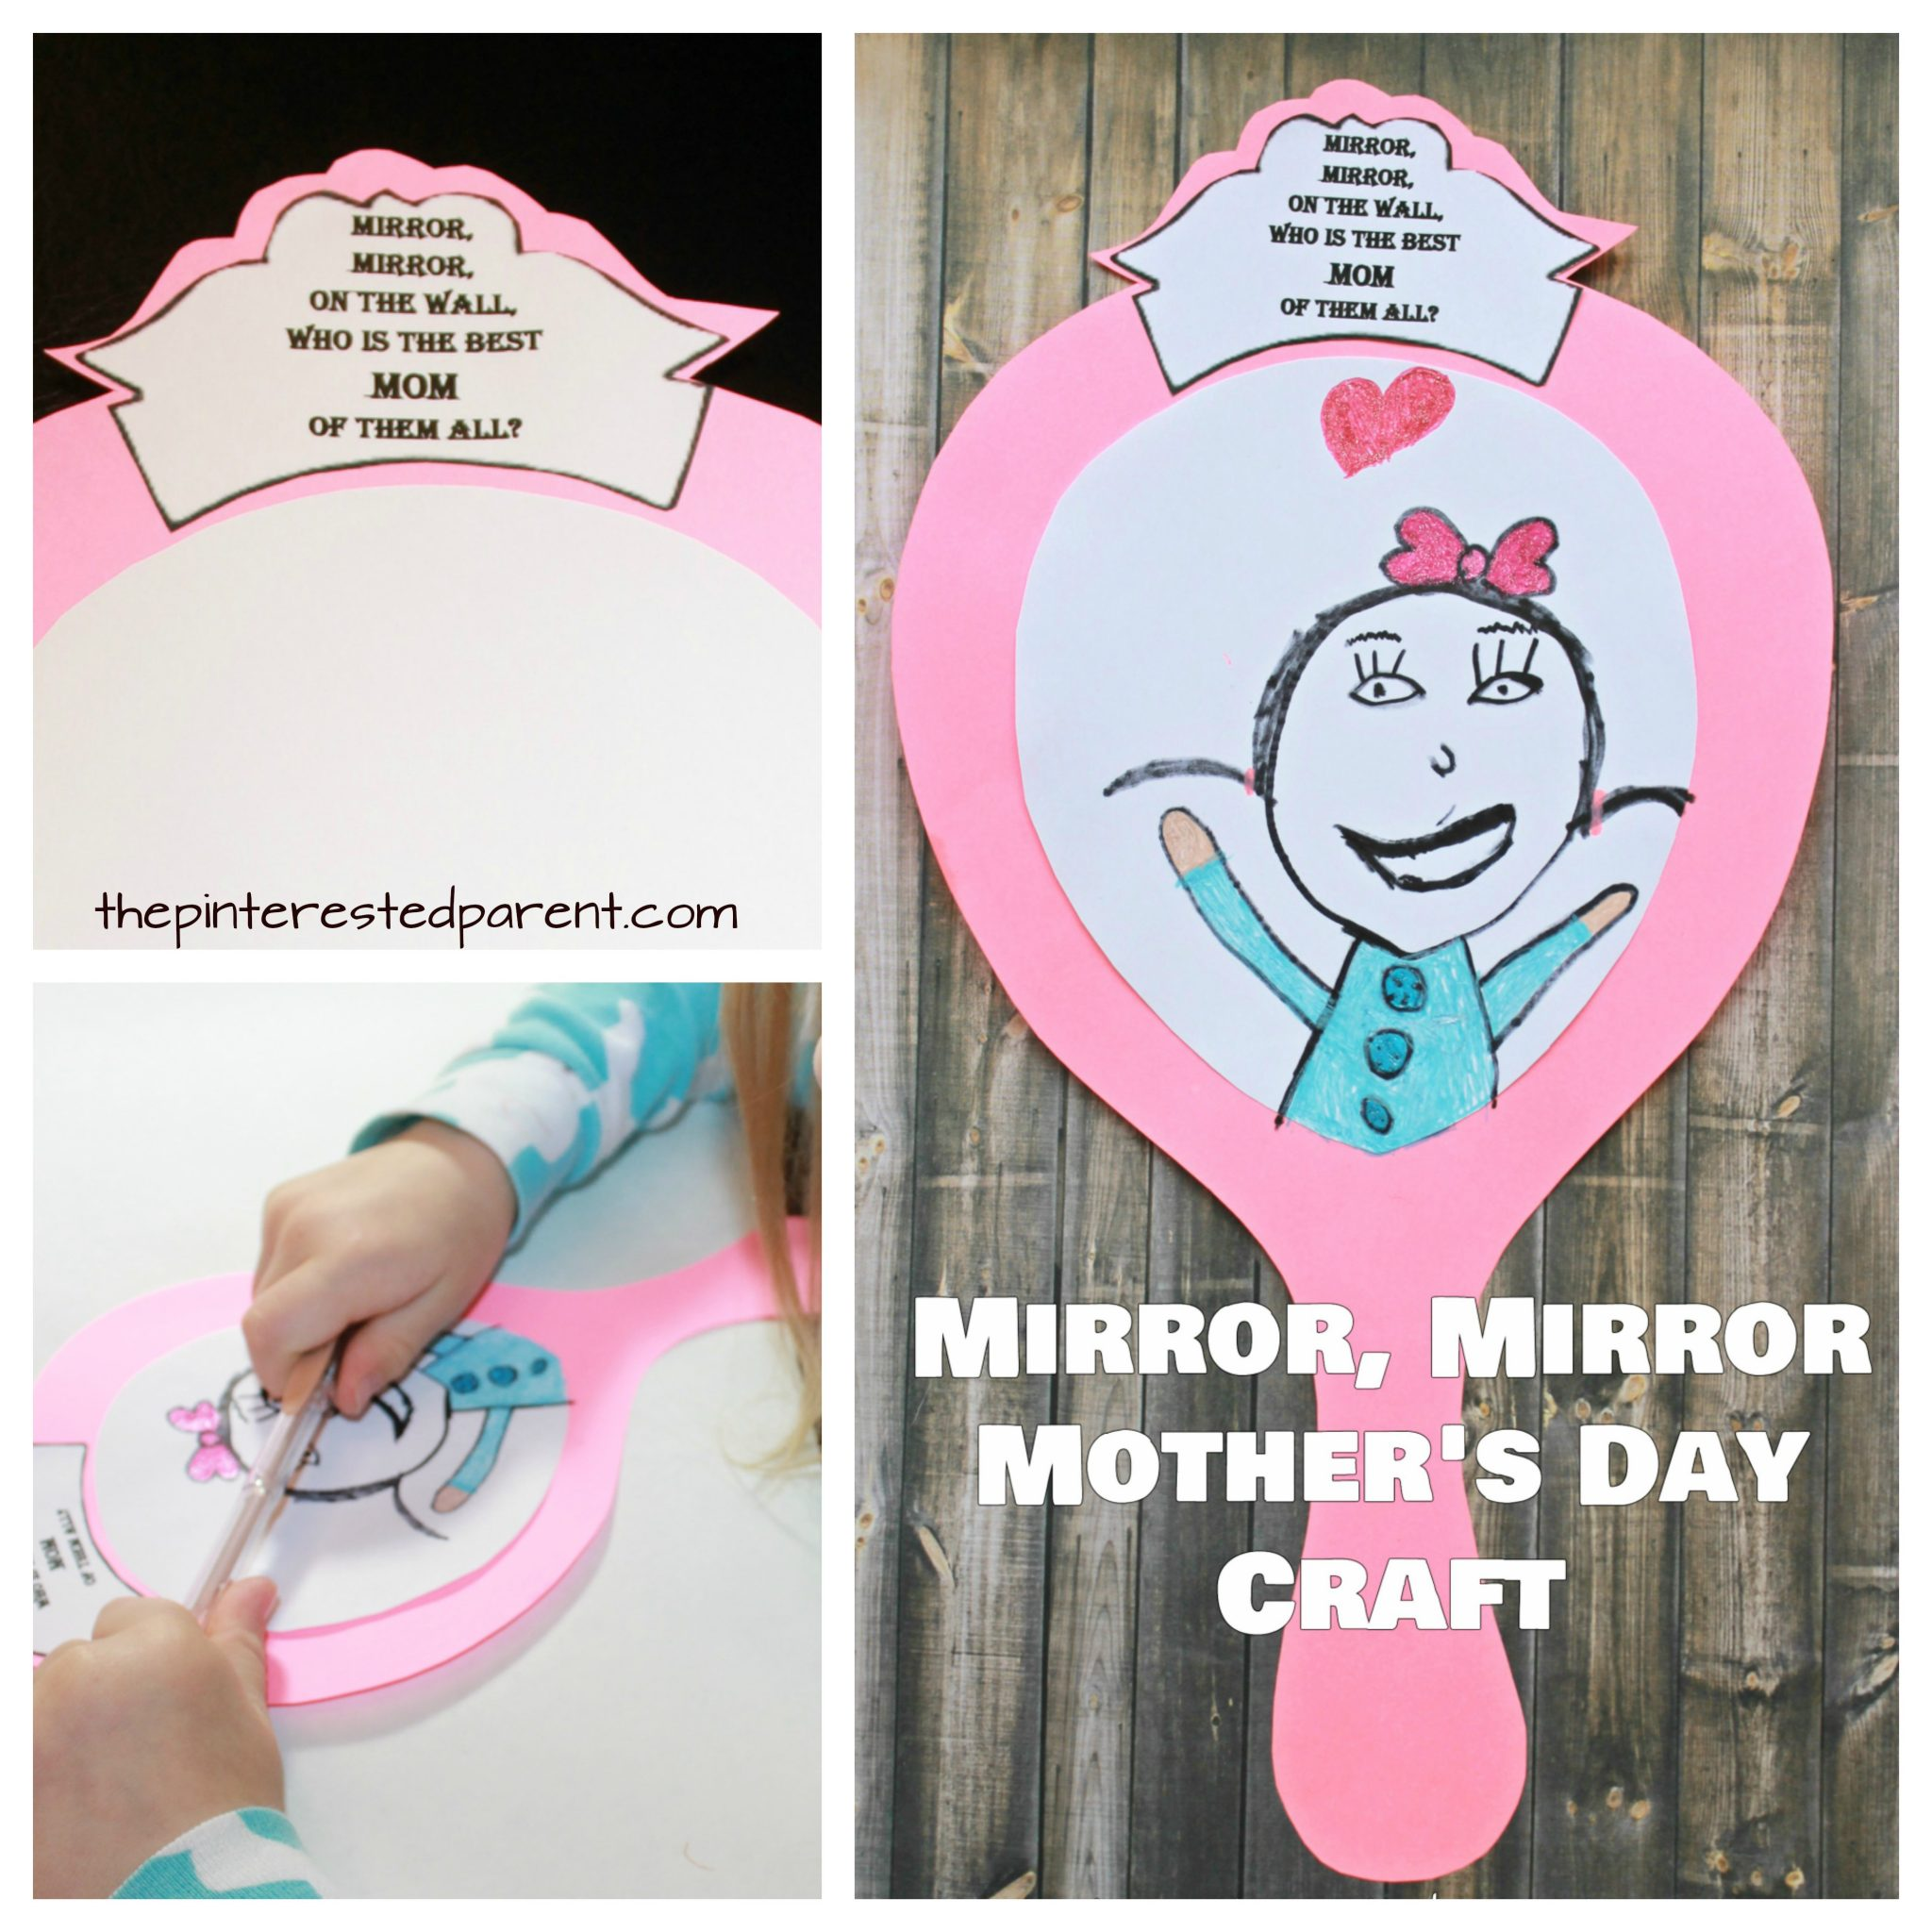 Free Printable Templates Mirror On The Wall Whos Best Mom Of